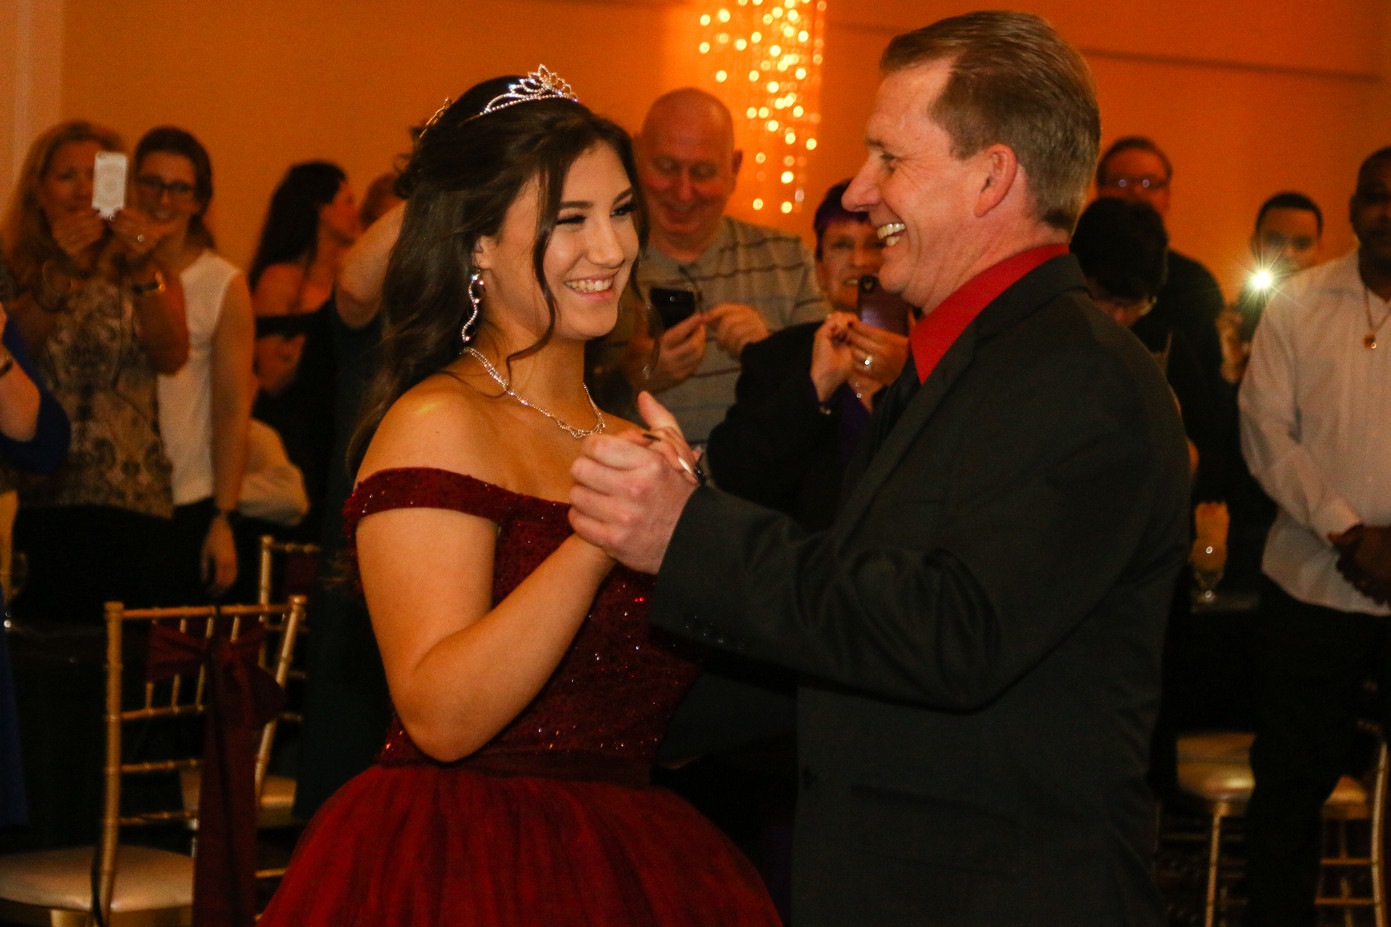 Father-And-Daughter-Dance-Photograph.jpg